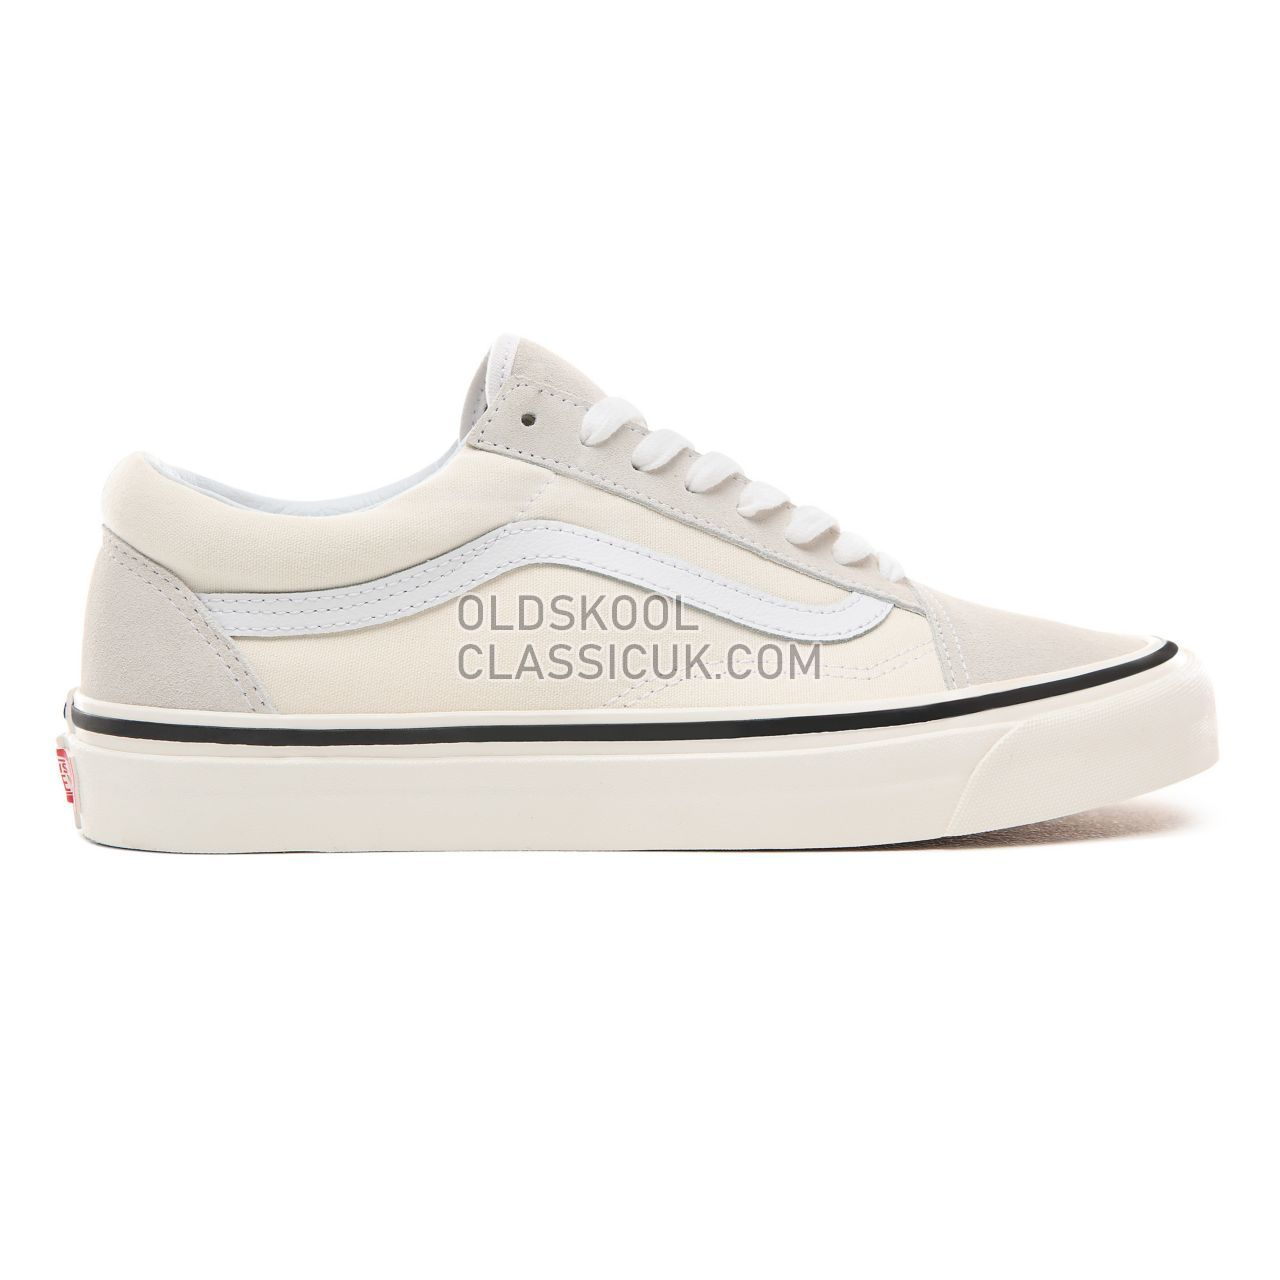 Vans Old Skool 36 DX Sneakers Mens Womens Unisex (Anaheim Factory) Classic White VA38G2MR4 Shoes